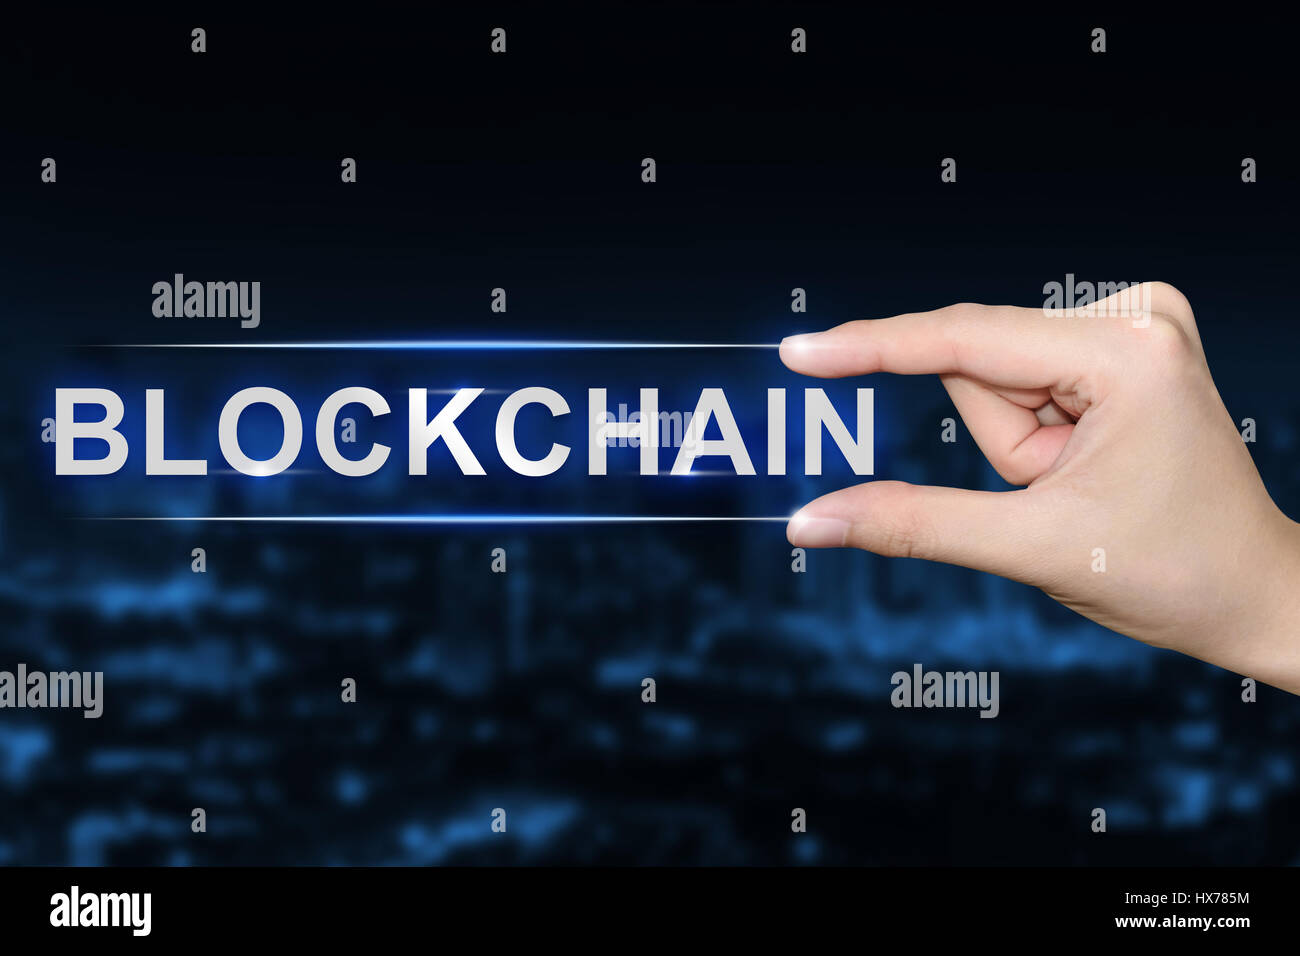 hand pushing blockchain button on blurred blue background - Stock Image